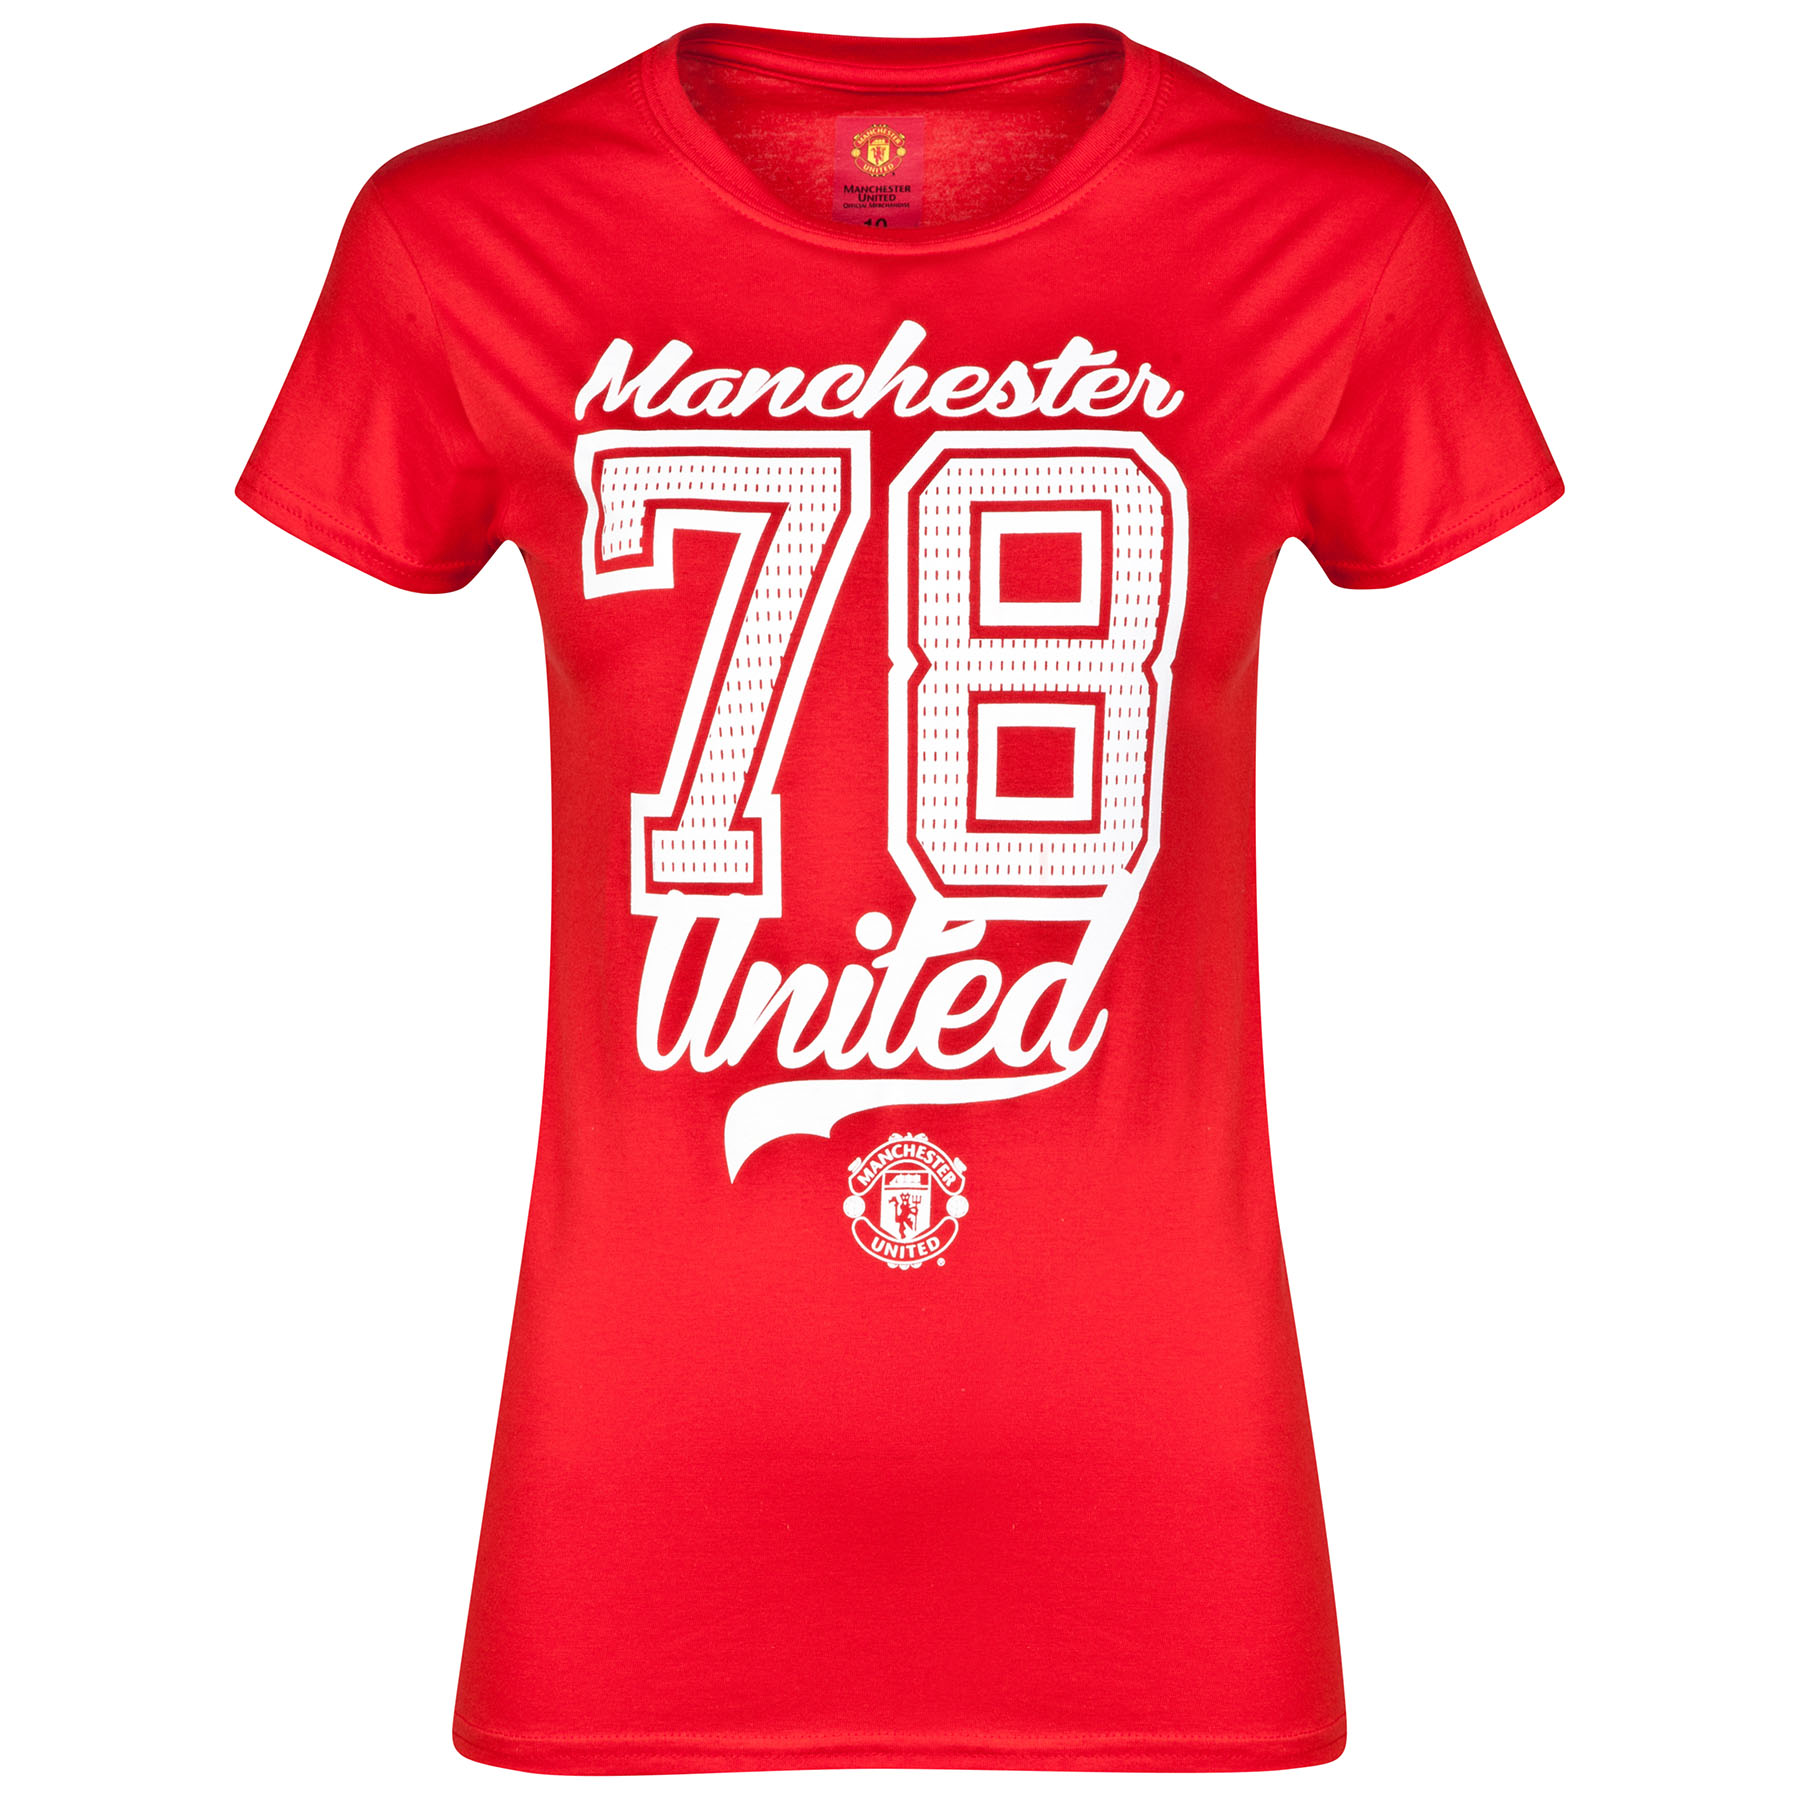 Manchester United Sports T-Shirt - Red - Womens